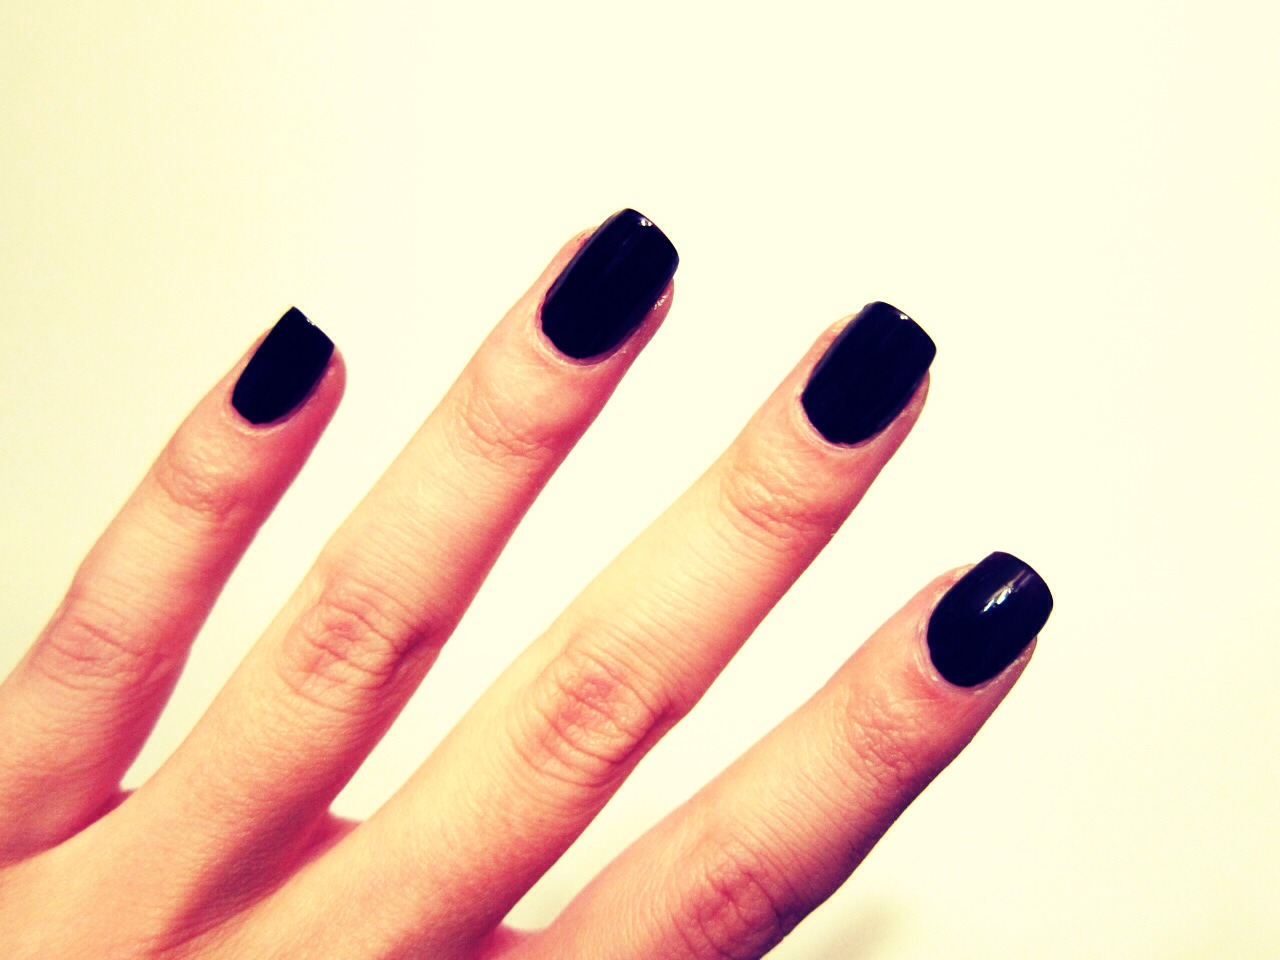 Paint your nails fully black